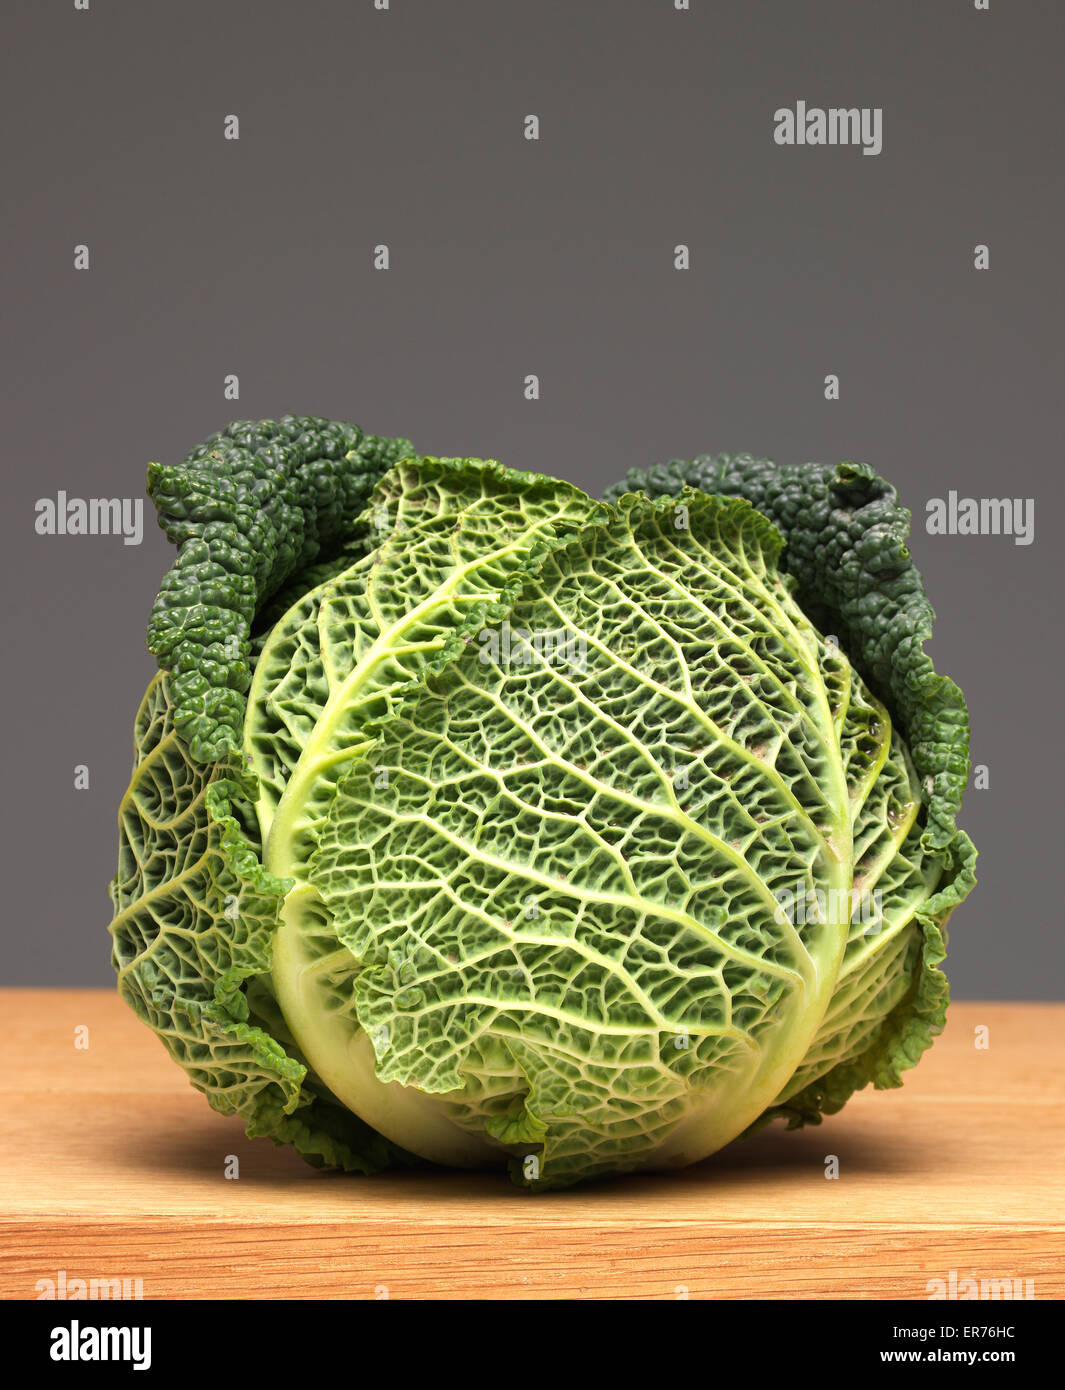 Cabbage on worktop - Stock Image